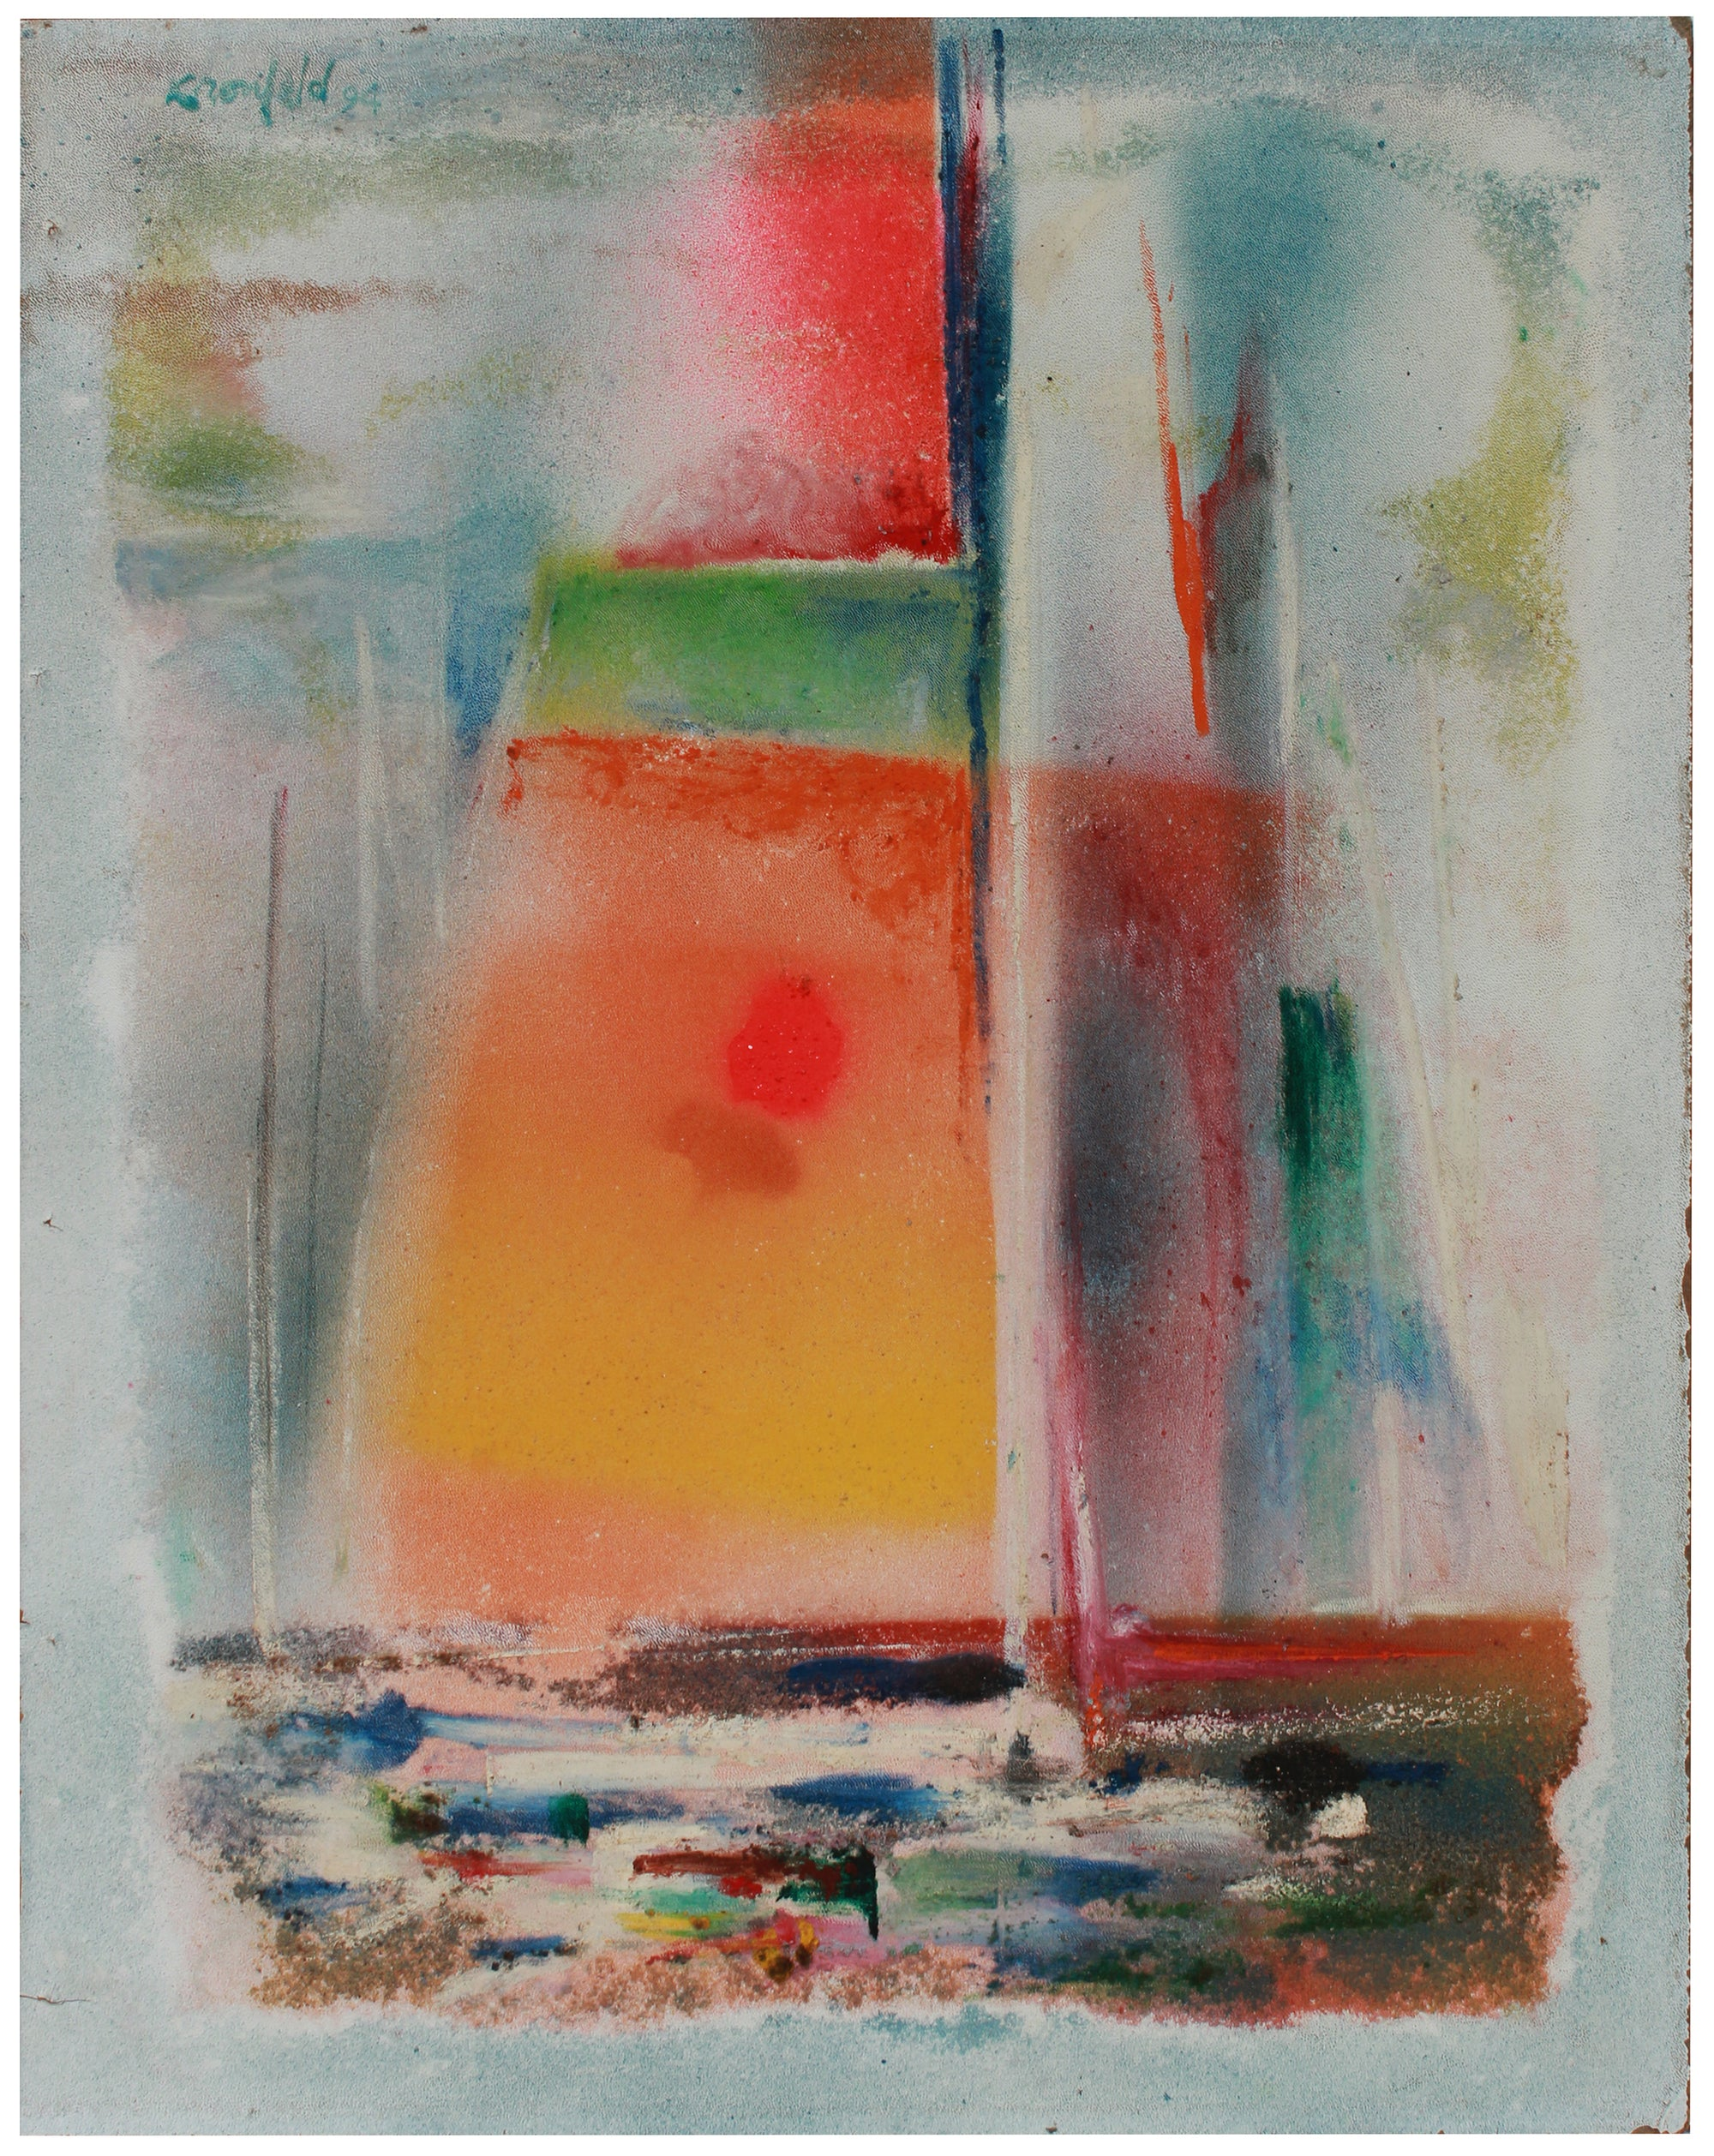 Abstracted Sailboat <br>1994 Mixed Media & Sand <br><br>#B0721